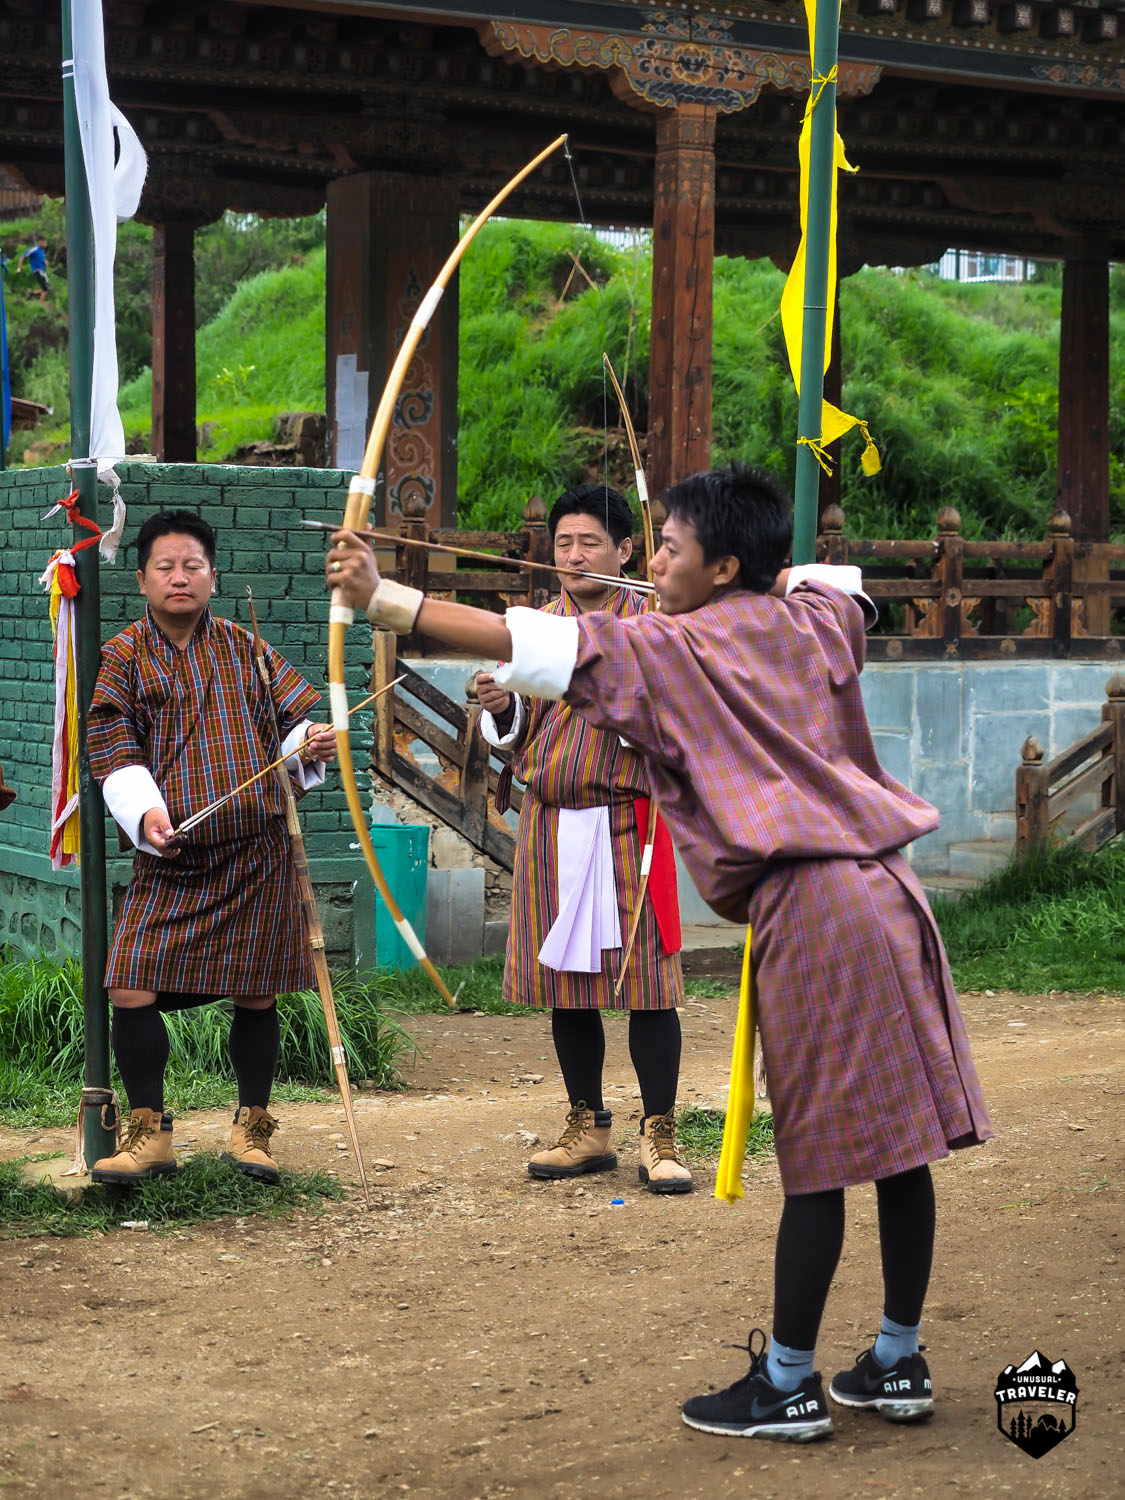 Archery is the national sport of Bhutan, and still widely played around the country.